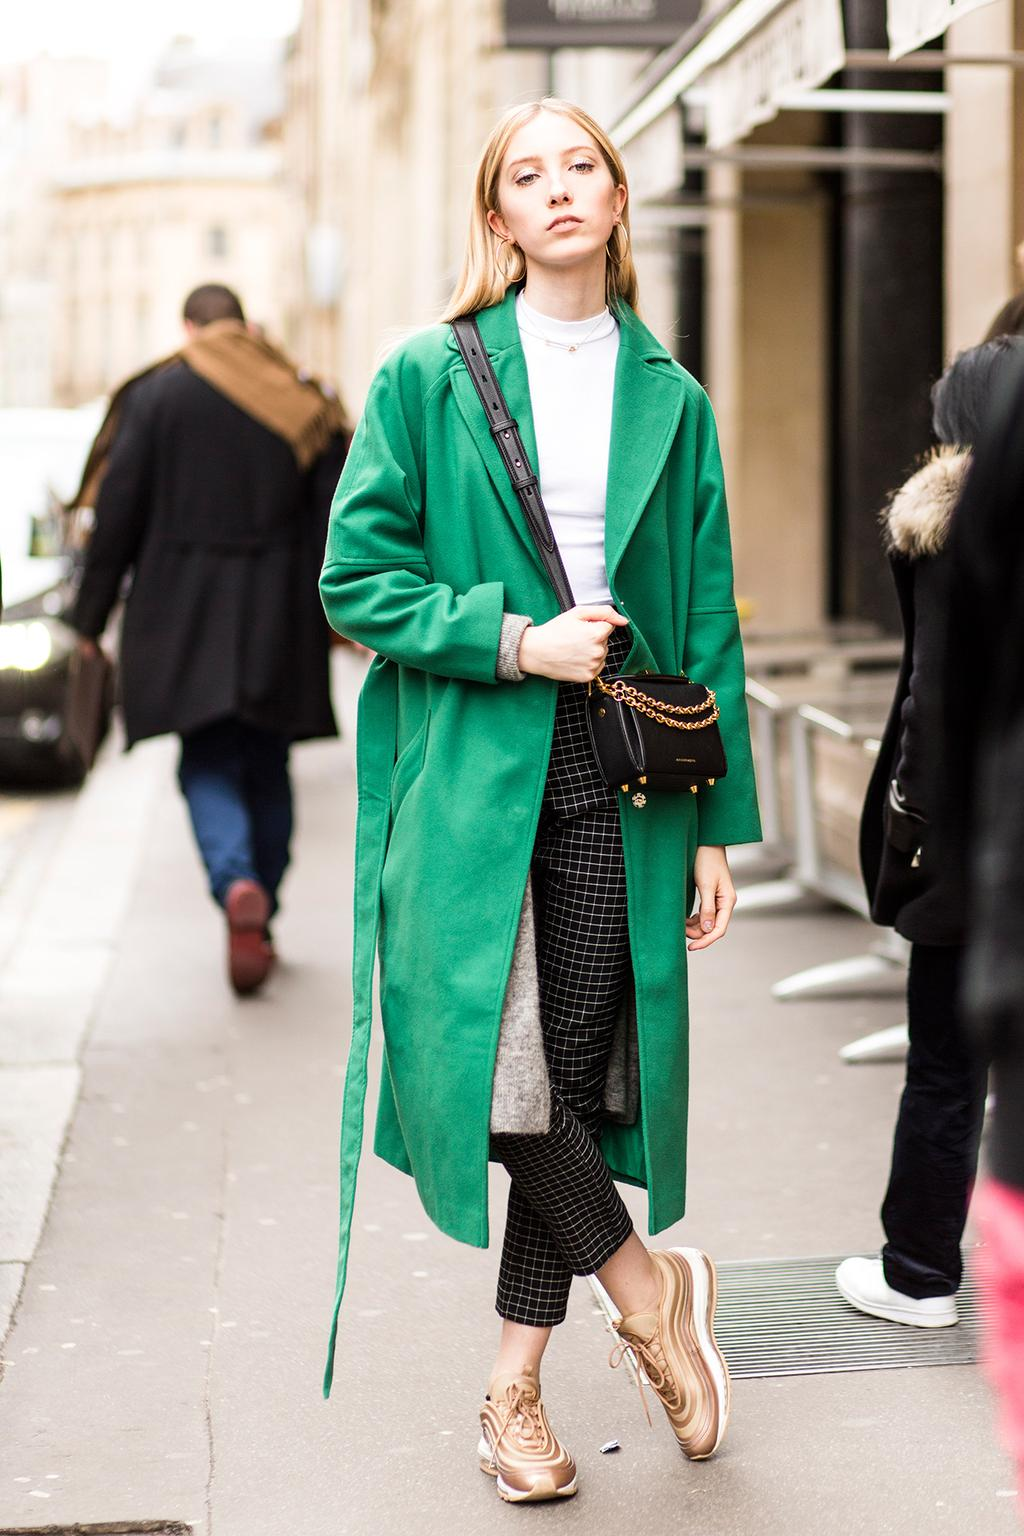 30 outfits to wear to work this winter Vogue Australia